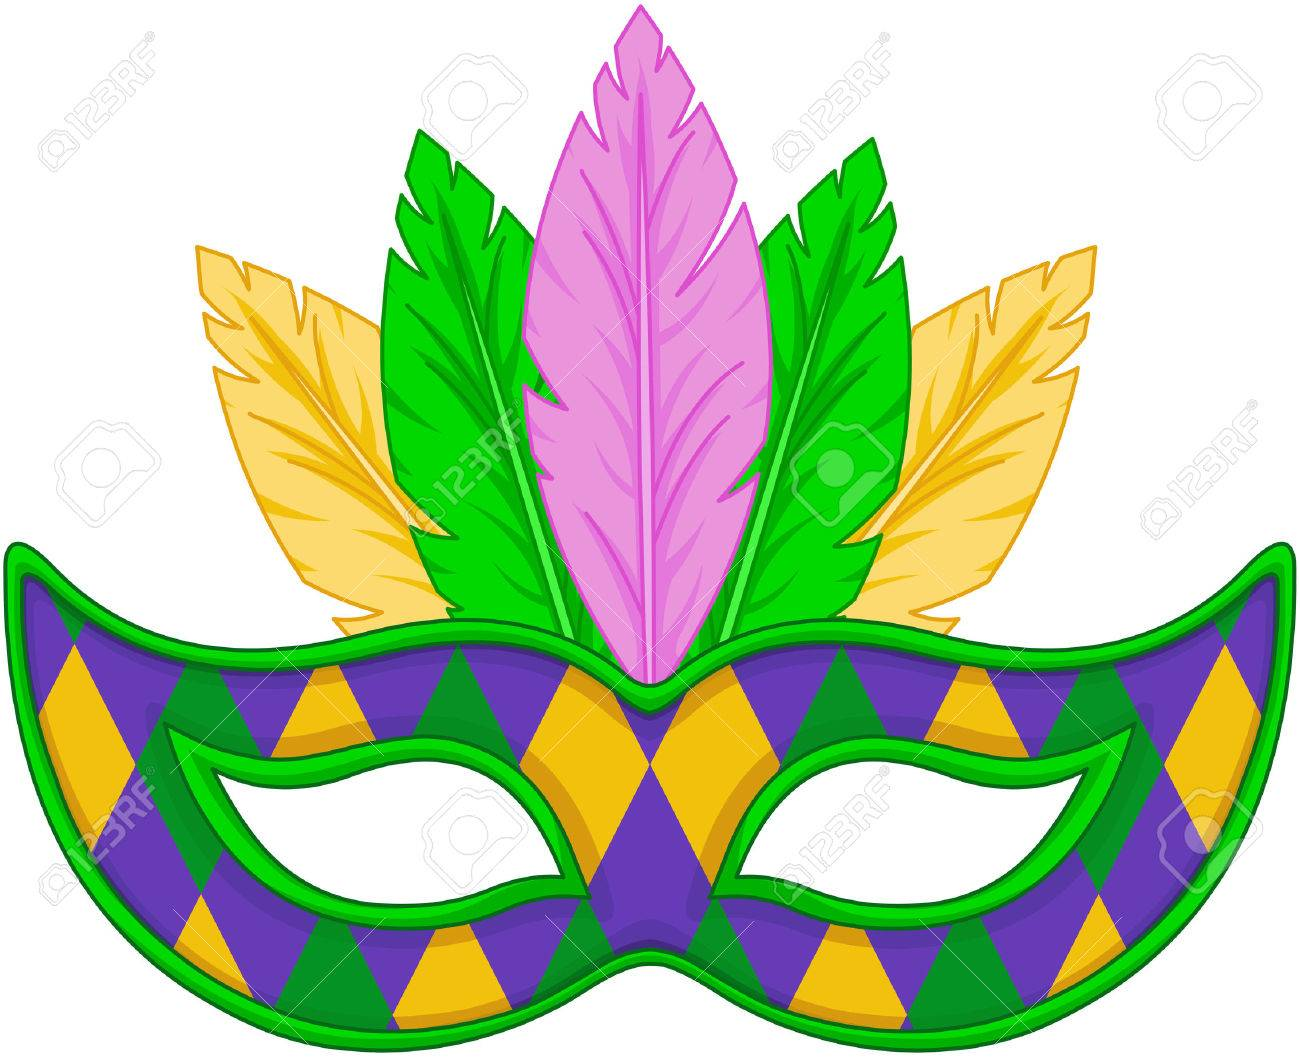 mardi gras mask design royalty free cliparts vectors and stock rh 123rf com mardi gras vector art free mardi gras vector images